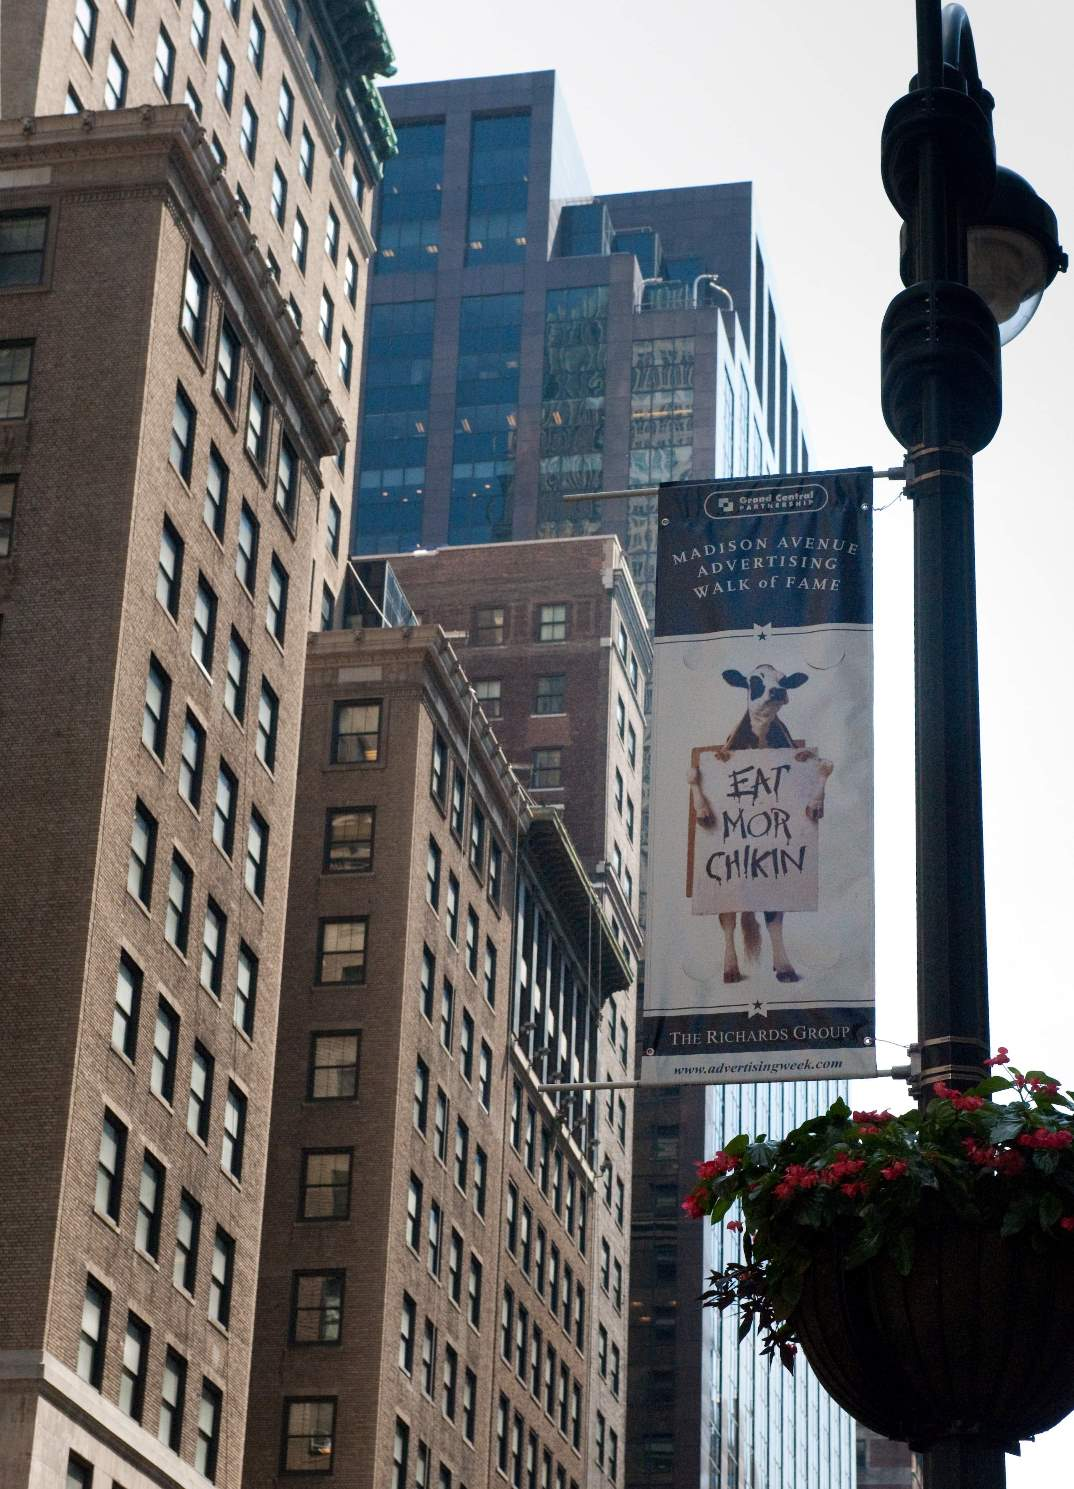 2007 – Cows Inducted into Madison Avenue's Advertising Walk of Fame